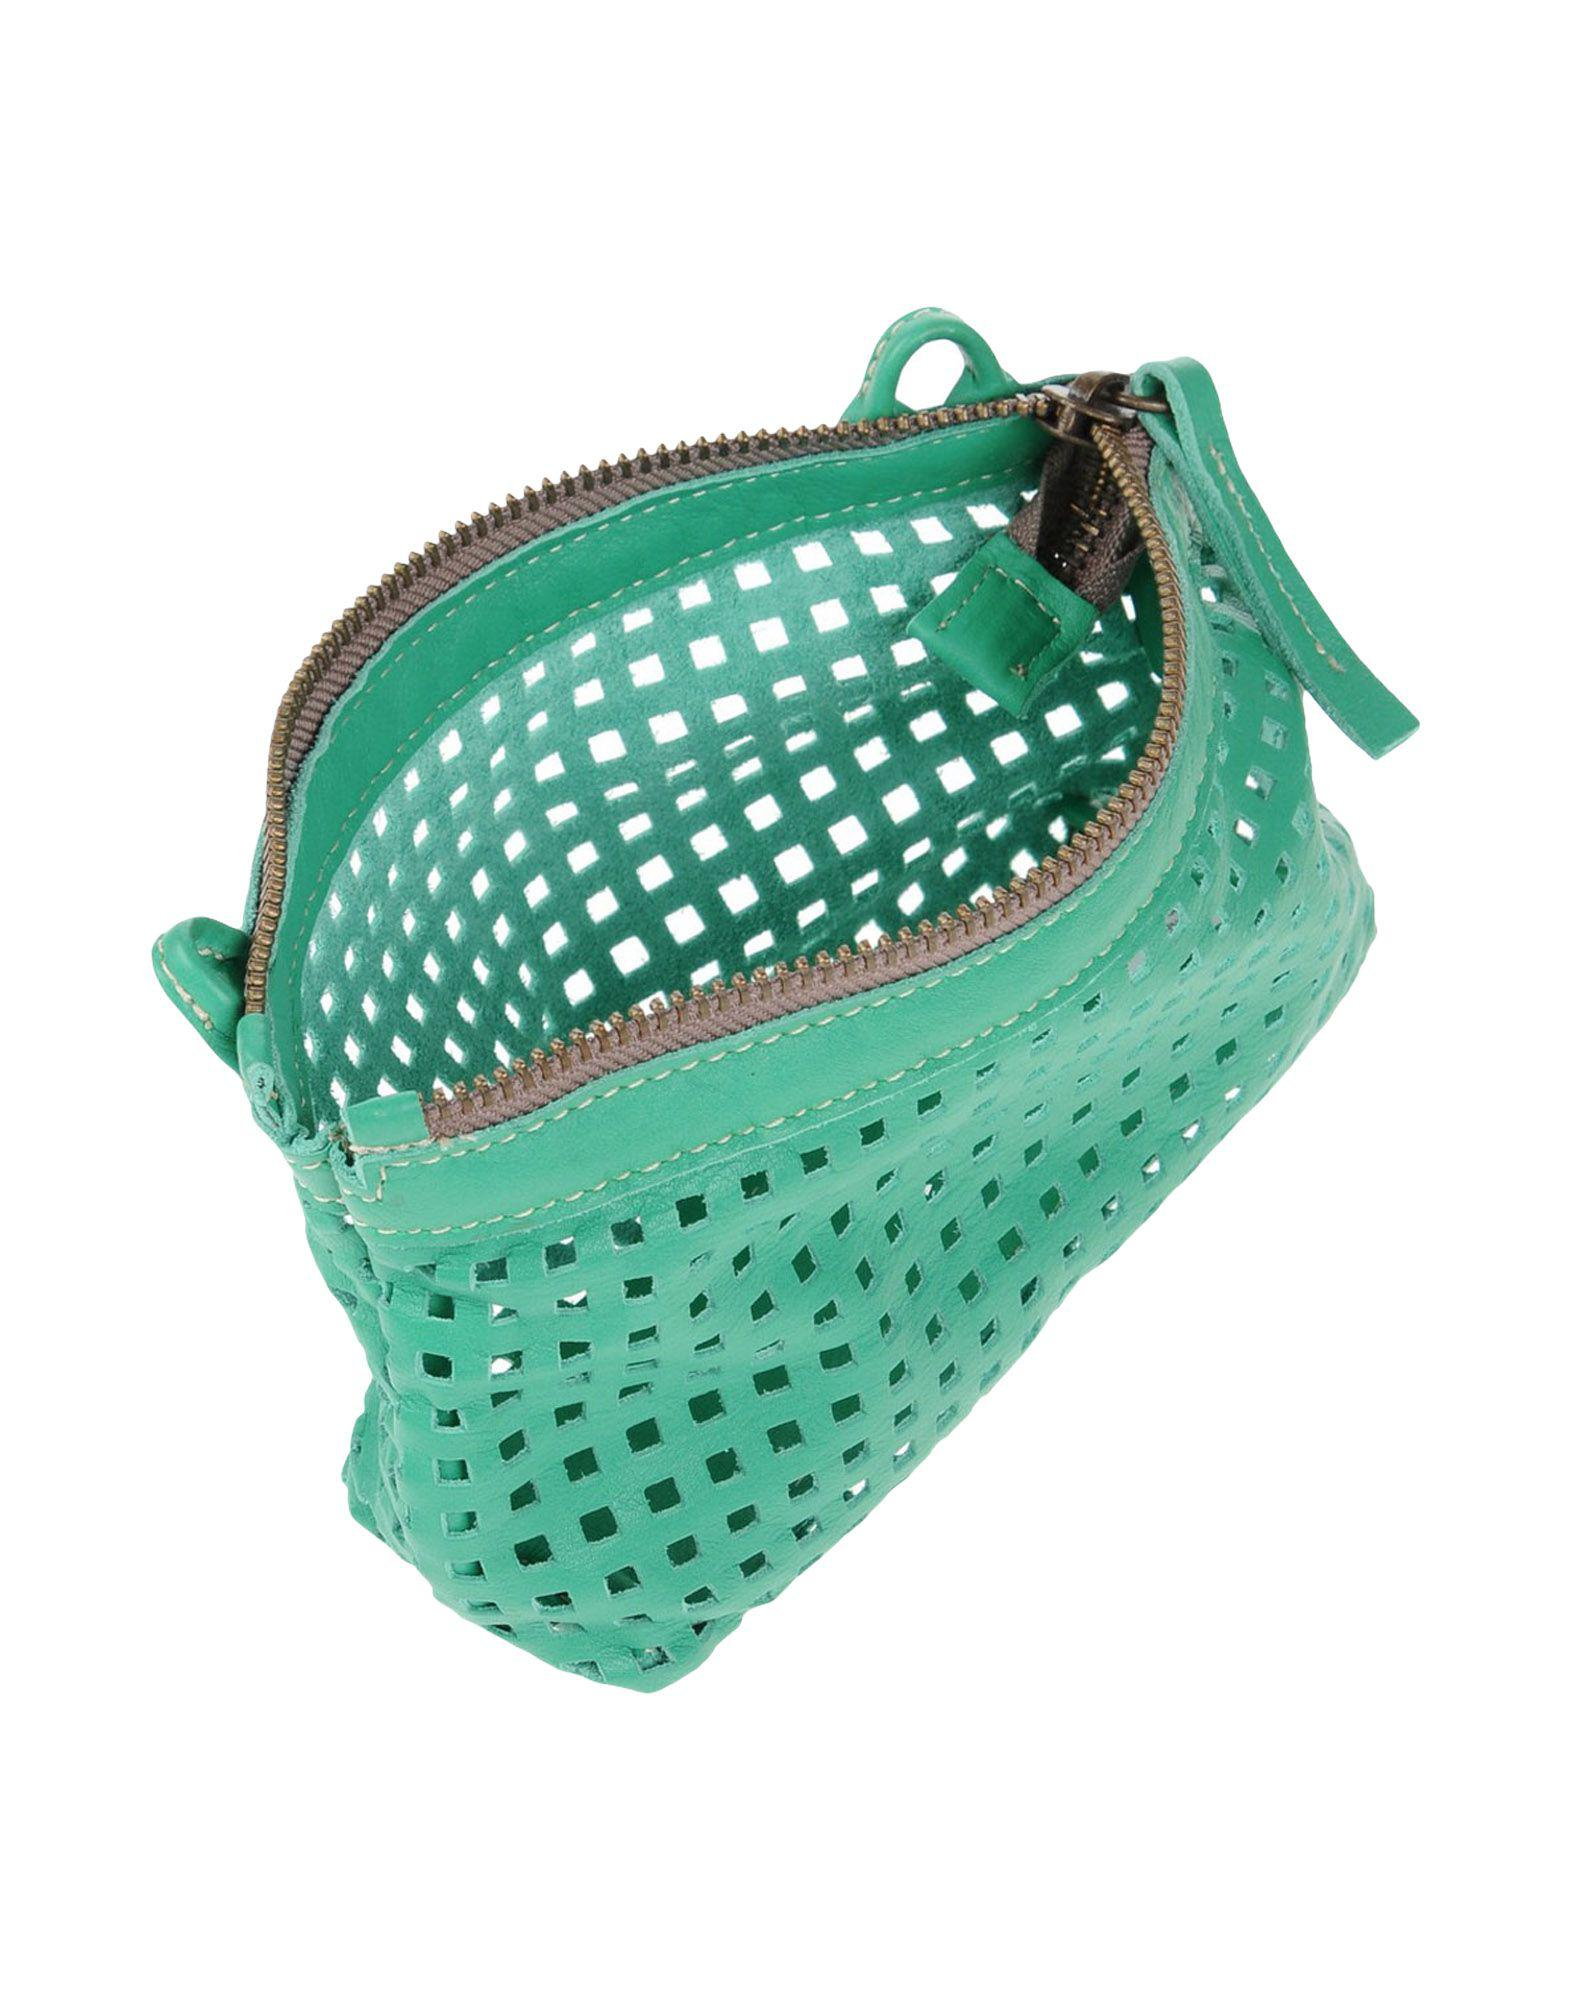 Caterina Lucchi Leather Cross-body Bag in Green